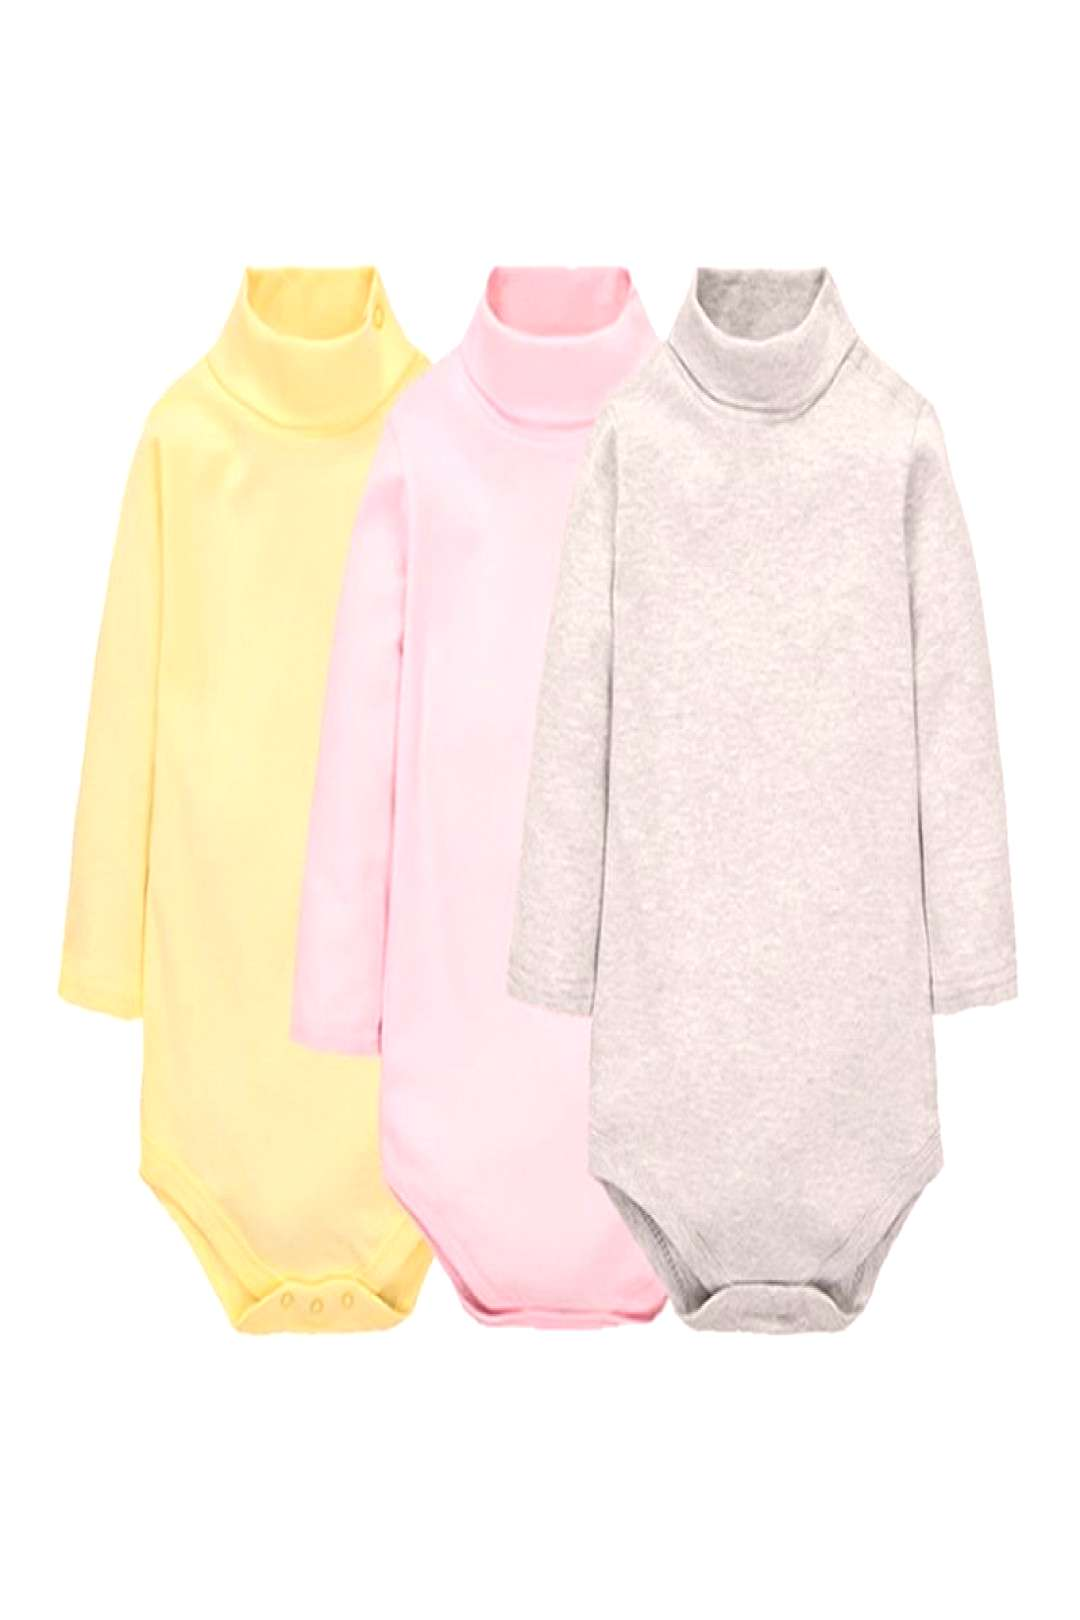 12 Color Baby Clothes 0-24M Newborn baby boy girl clothes Jumpsuit Long Sleeve Infant Product solid